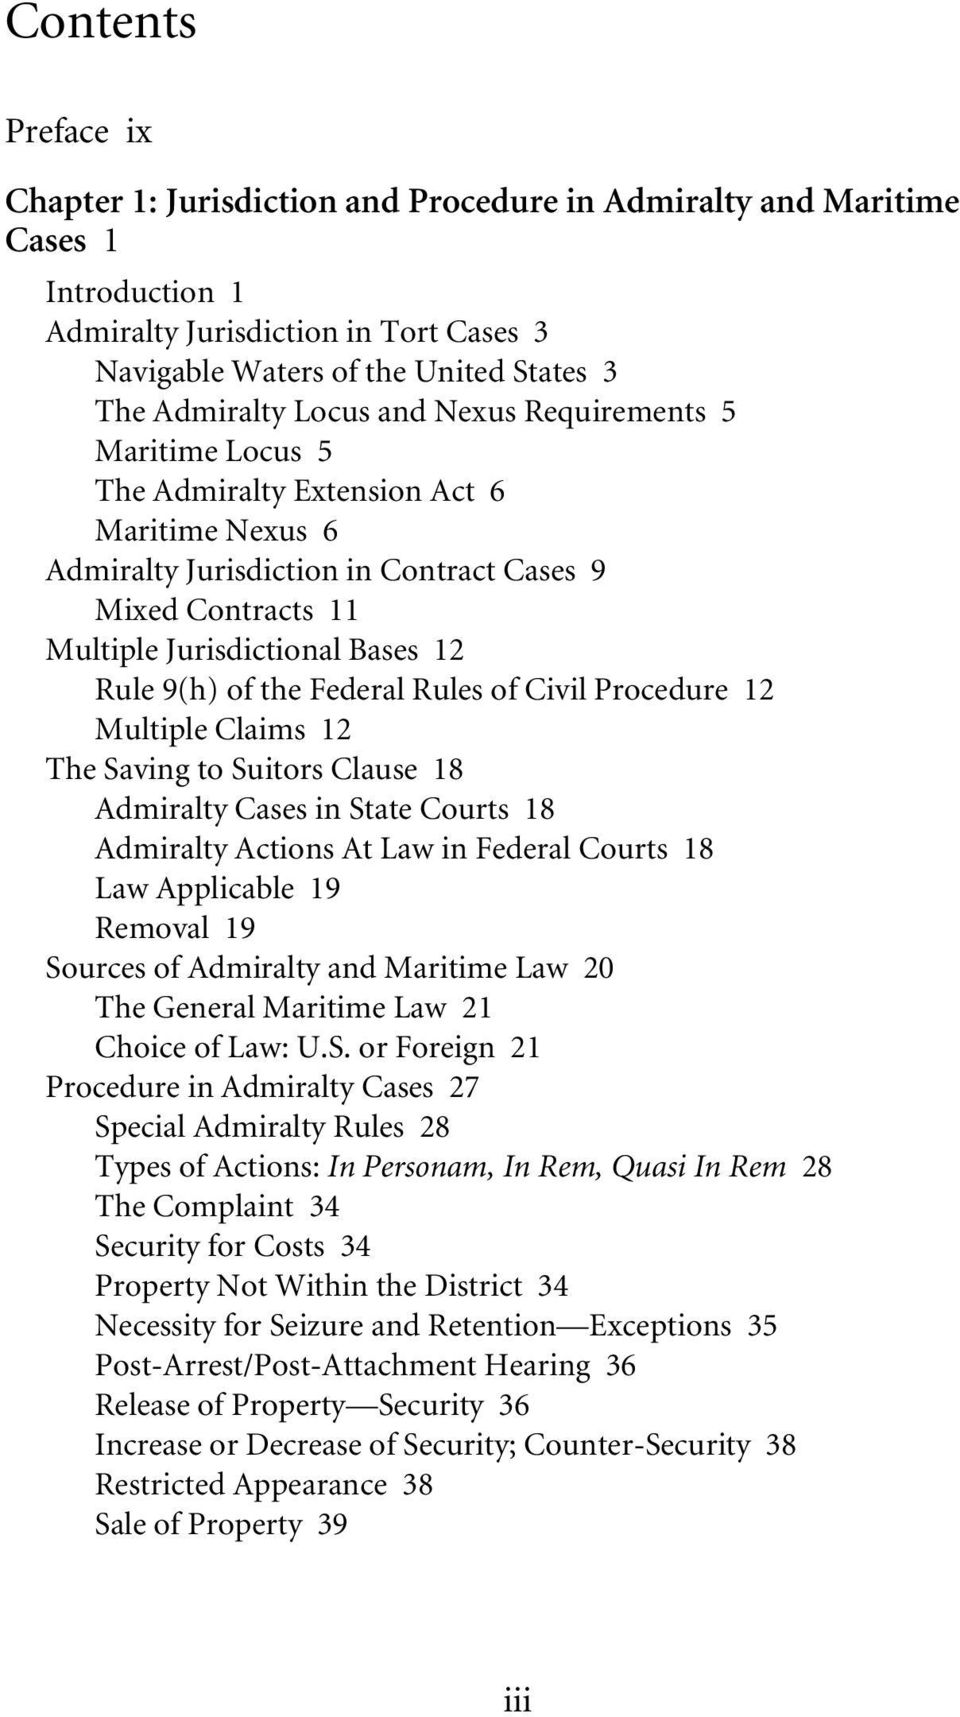 of the Federal Rules of Civil Procedure 12 Multiple Claims 12 The Saving to Suitors Clause 18 Admiralty Cases in State Courts 18 Admiralty Actions At Law in Federal Courts 18 Law Applicable 19